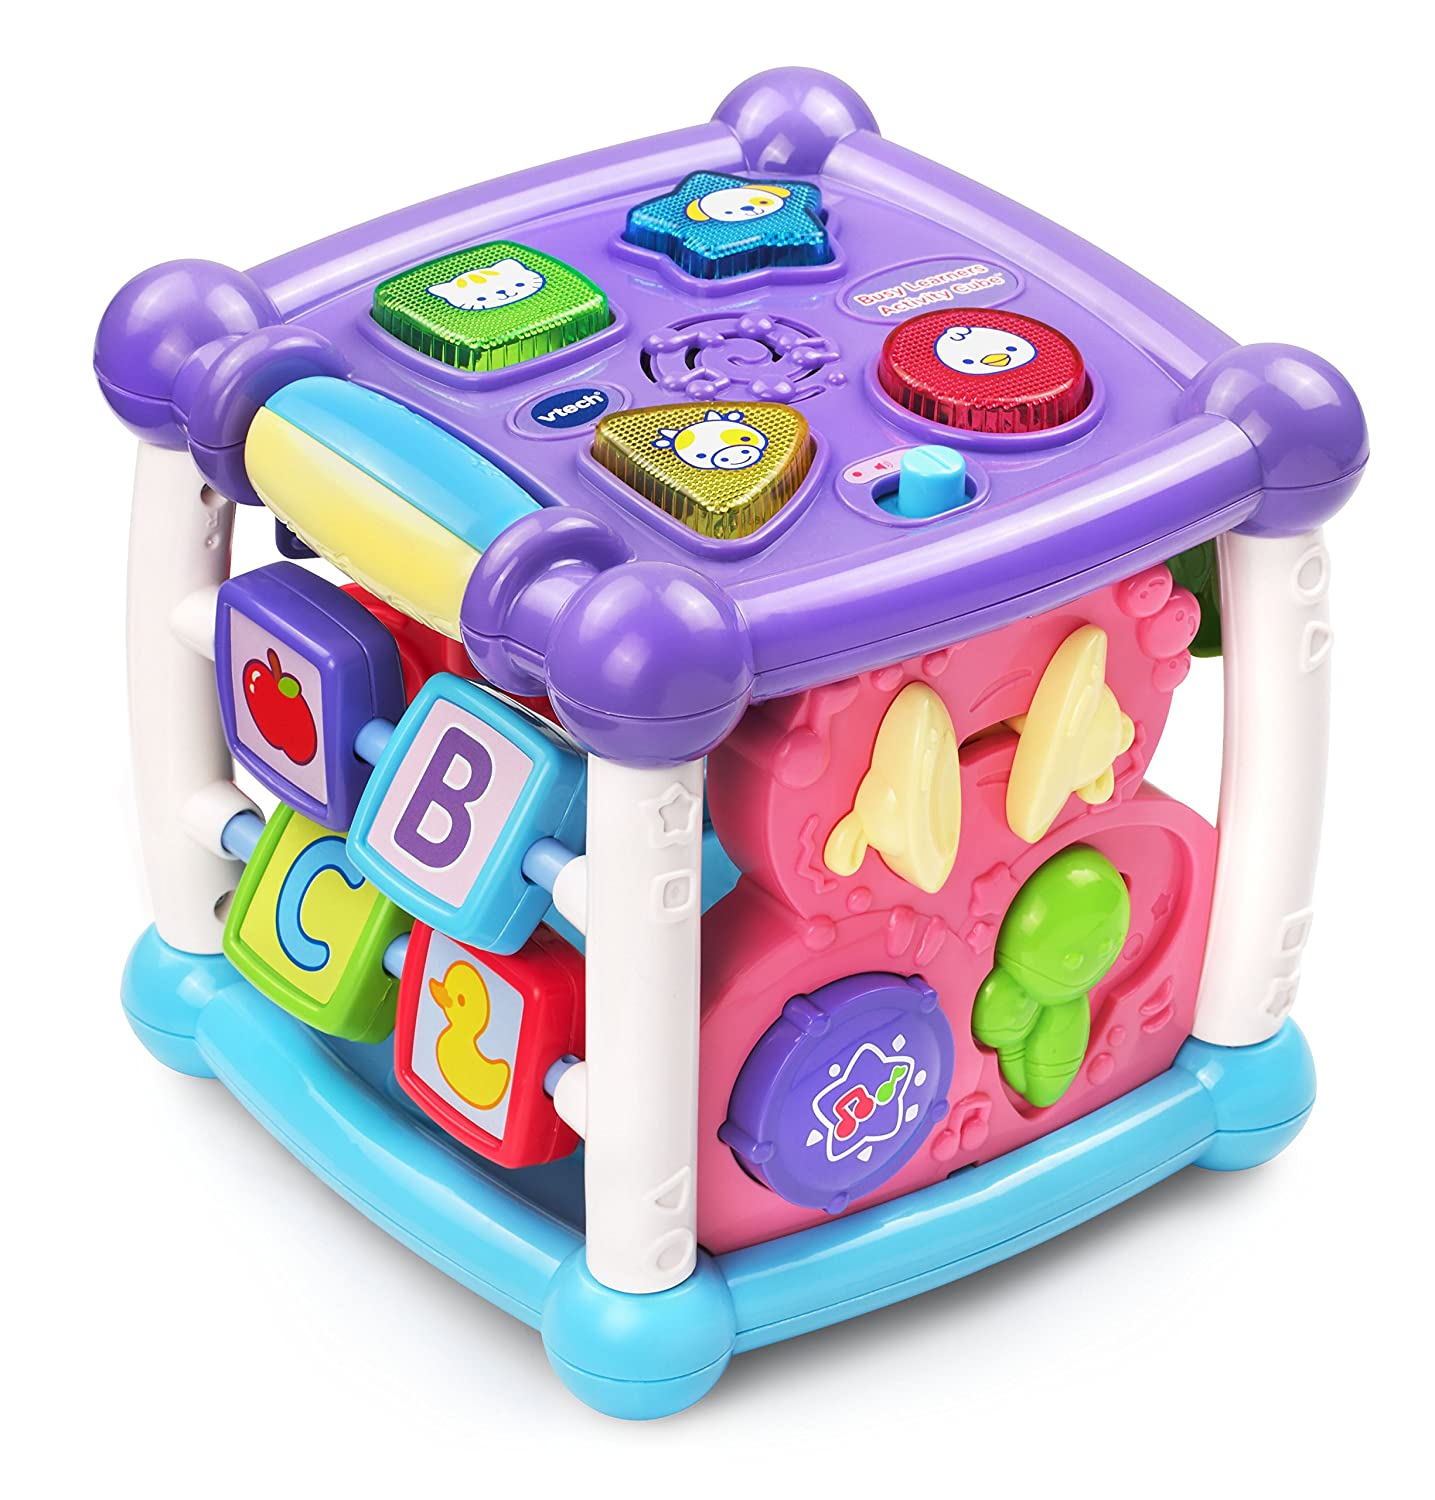 VTech Busy Learners Activity Cube, Purple 80-150589